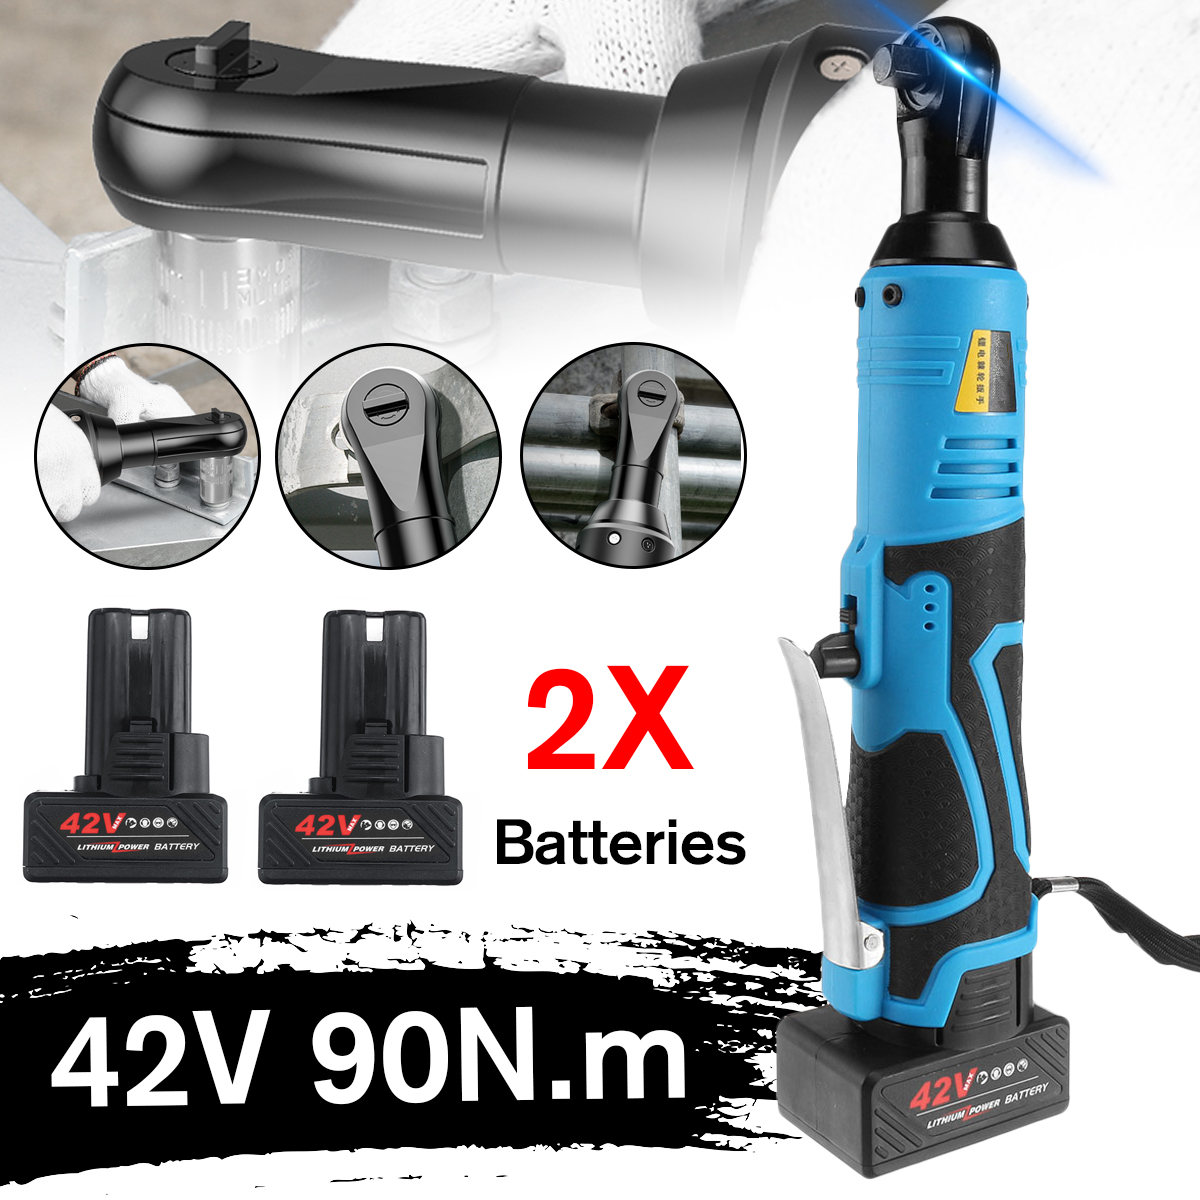 Electric Wrench 42V 3 8inch Cordless Ratchet Rechargeable Scaffolding 90N m Right Angle Wrench Tool with 1 2 Battery Charger Kit